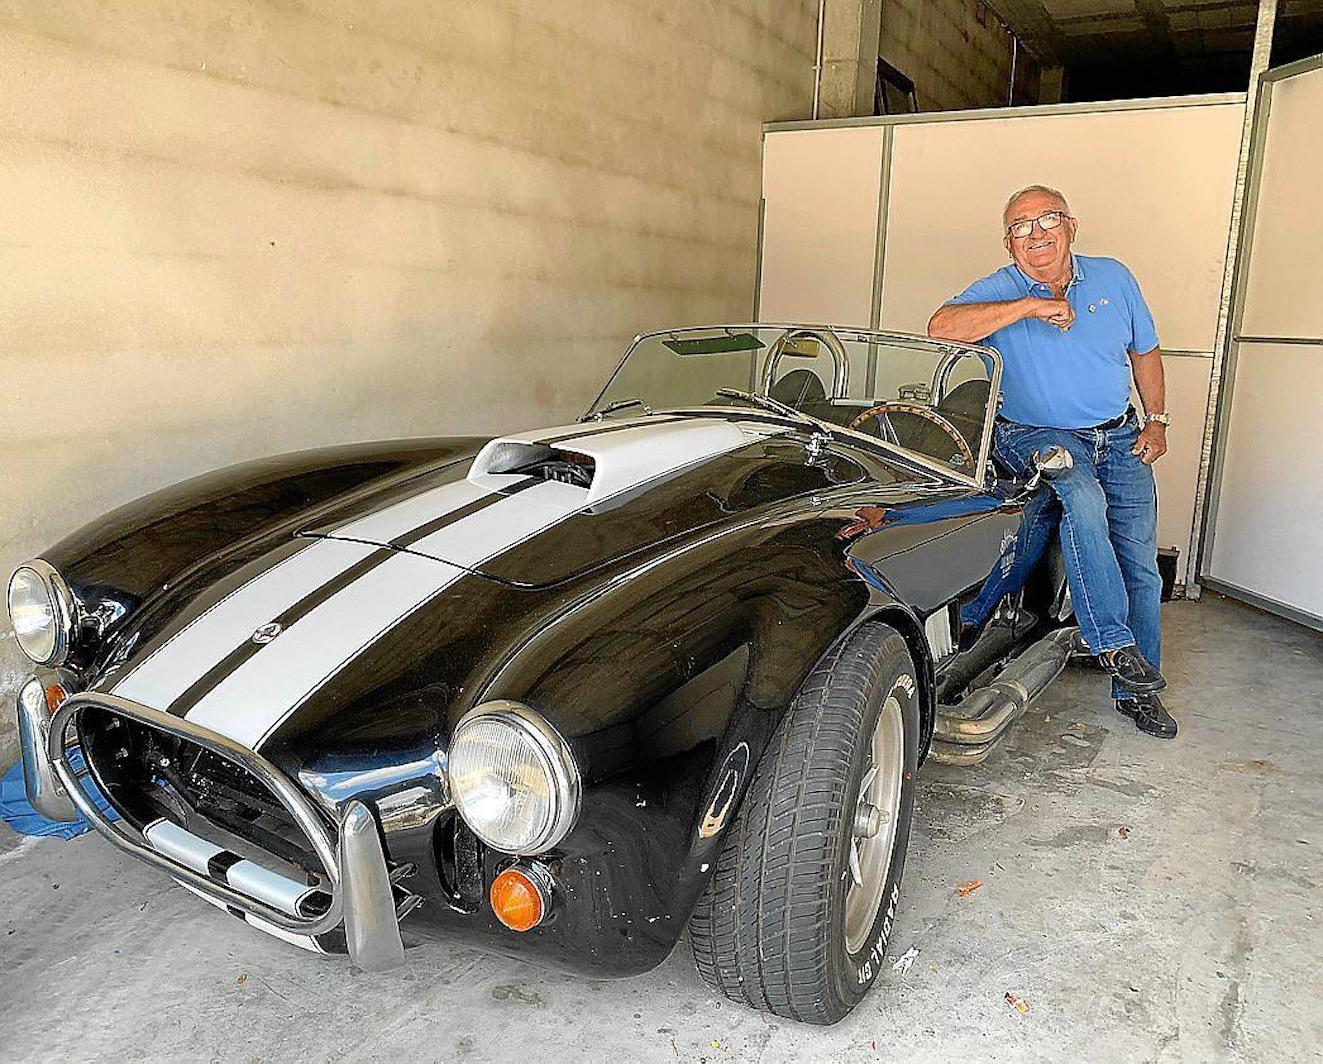 Manolo Barahona with the fully restored Cobra Convertible.